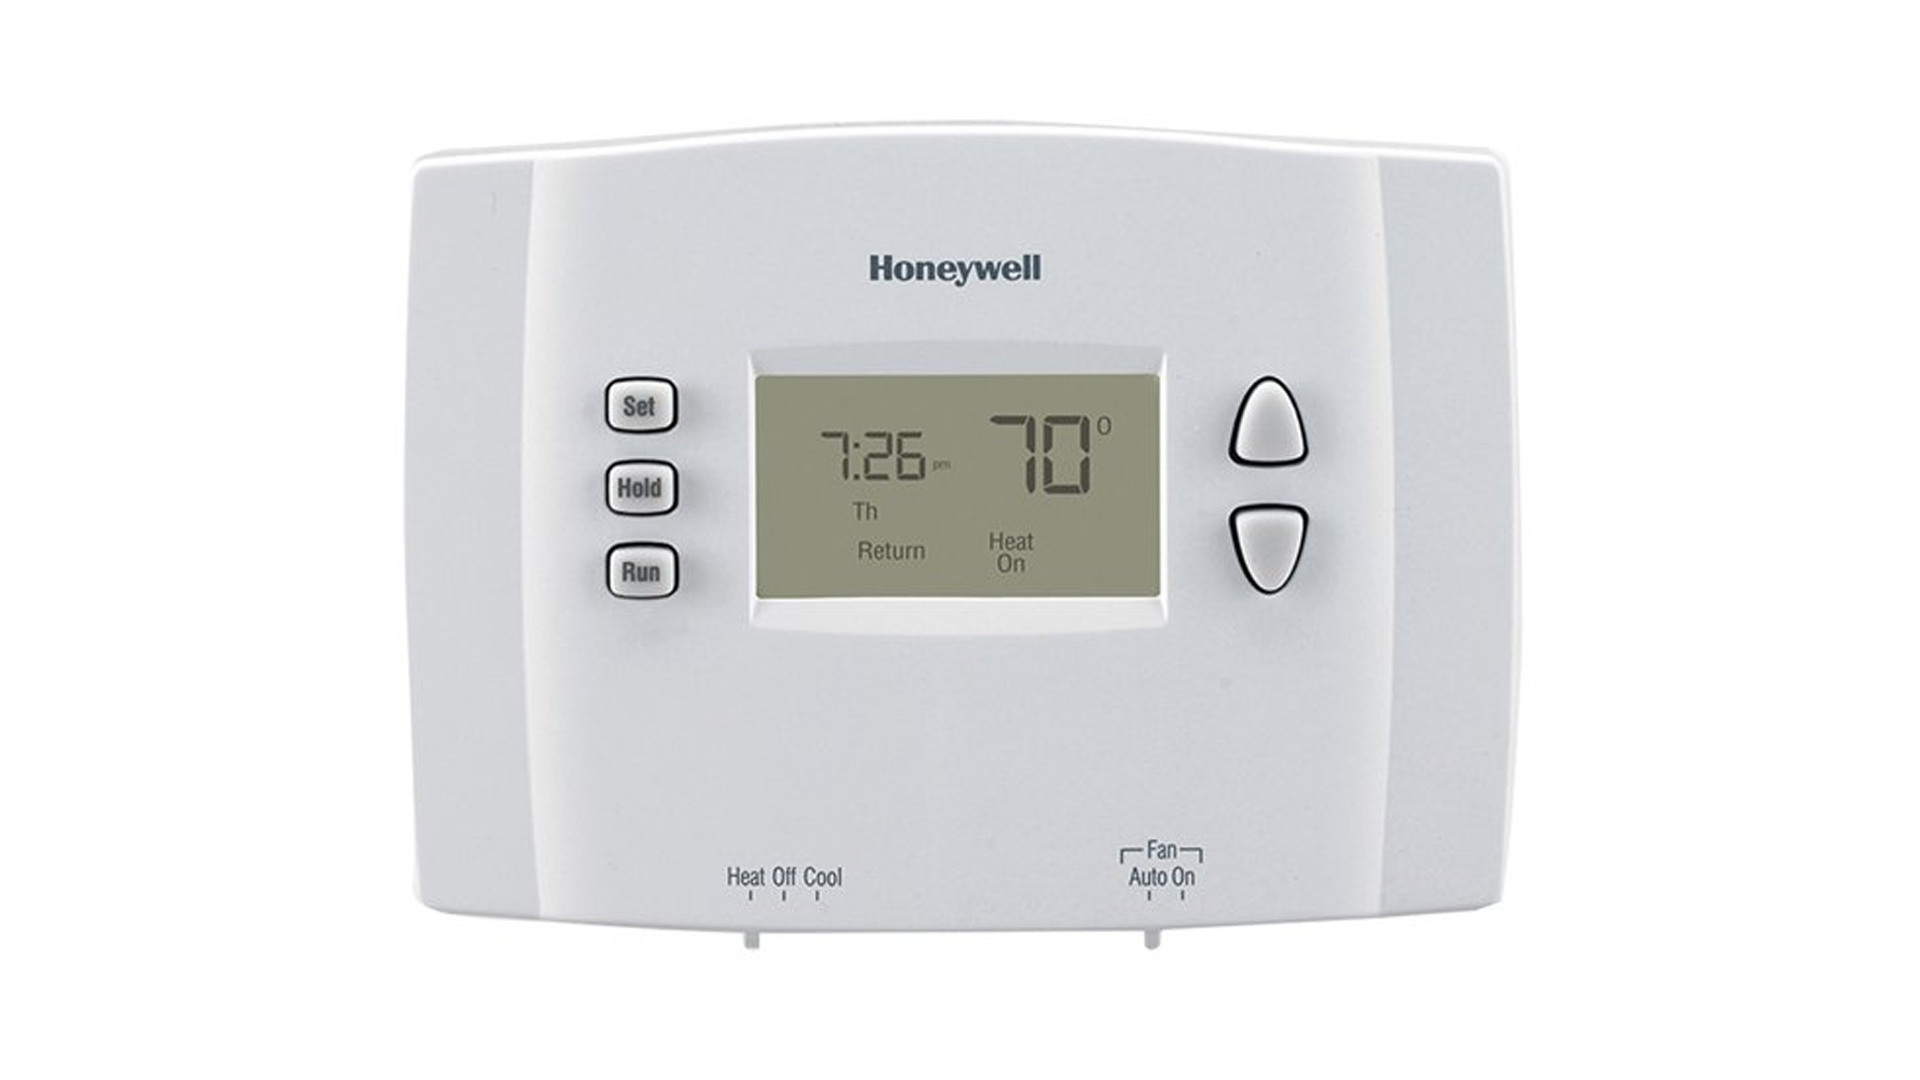 A photo of the Honeywell 1-day programmable thermostat.